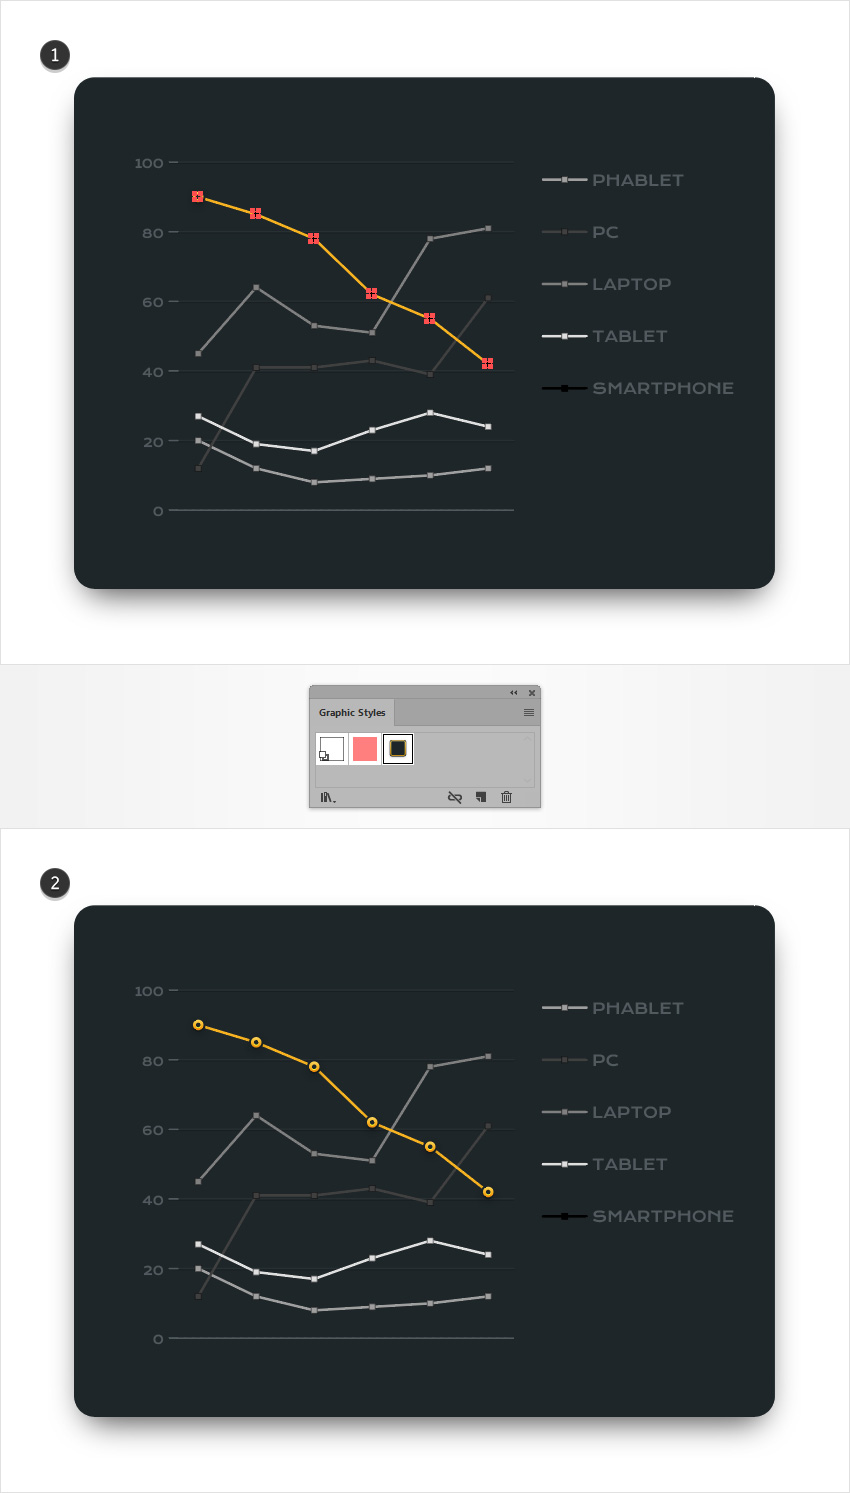 How to Create an Editable Line Chart in Adobe Illustrator